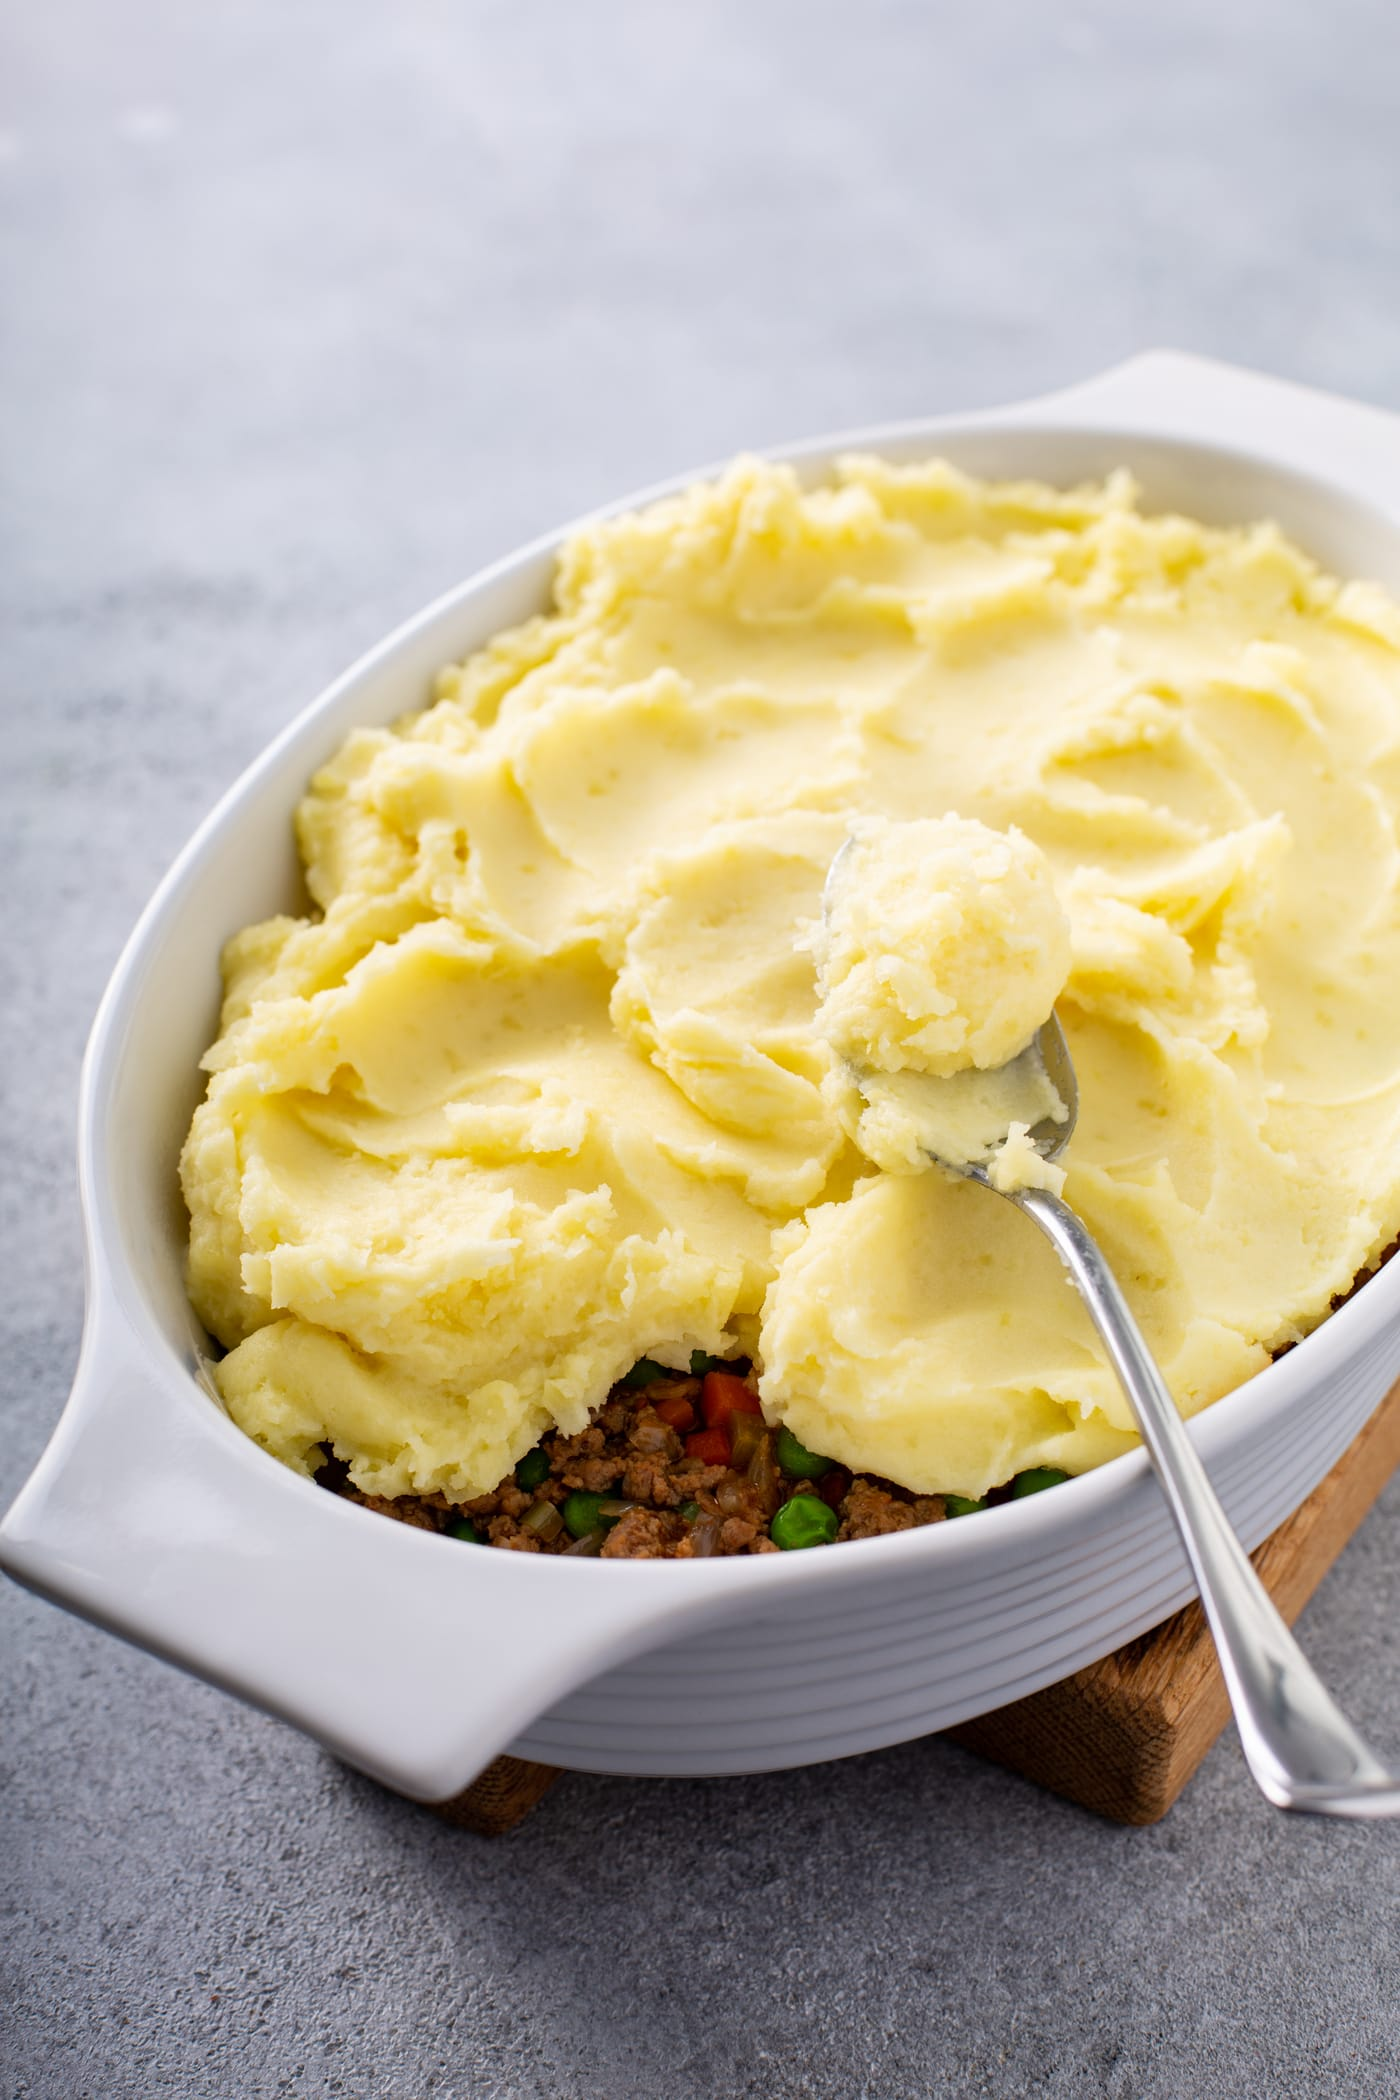 A casserole dish filled with shepherd's pie filling and topped with mashed potatoes. There is a spoon resting on top.